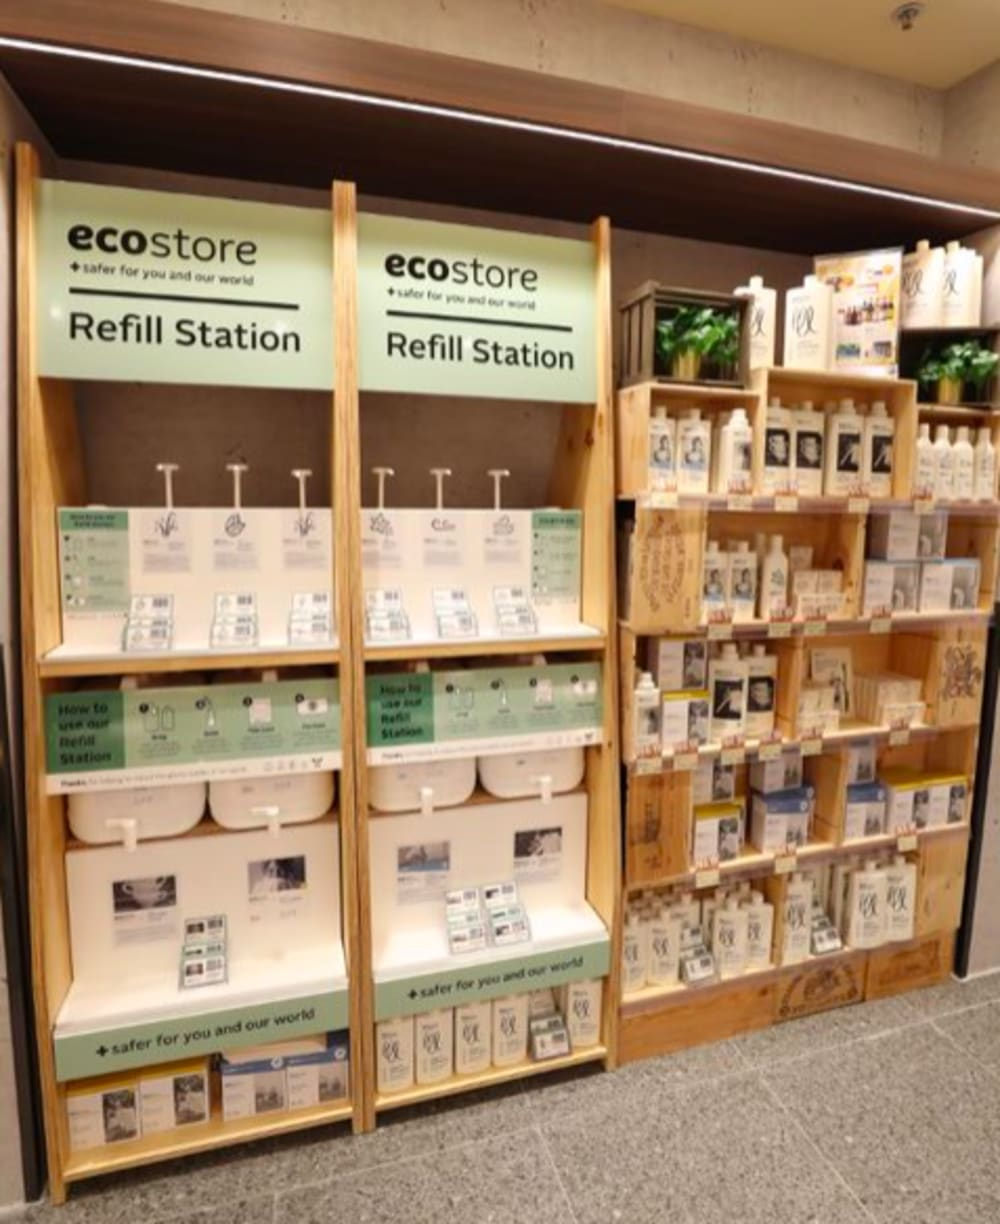 ecostore refill station at GREAT Food Hall Hong Kong